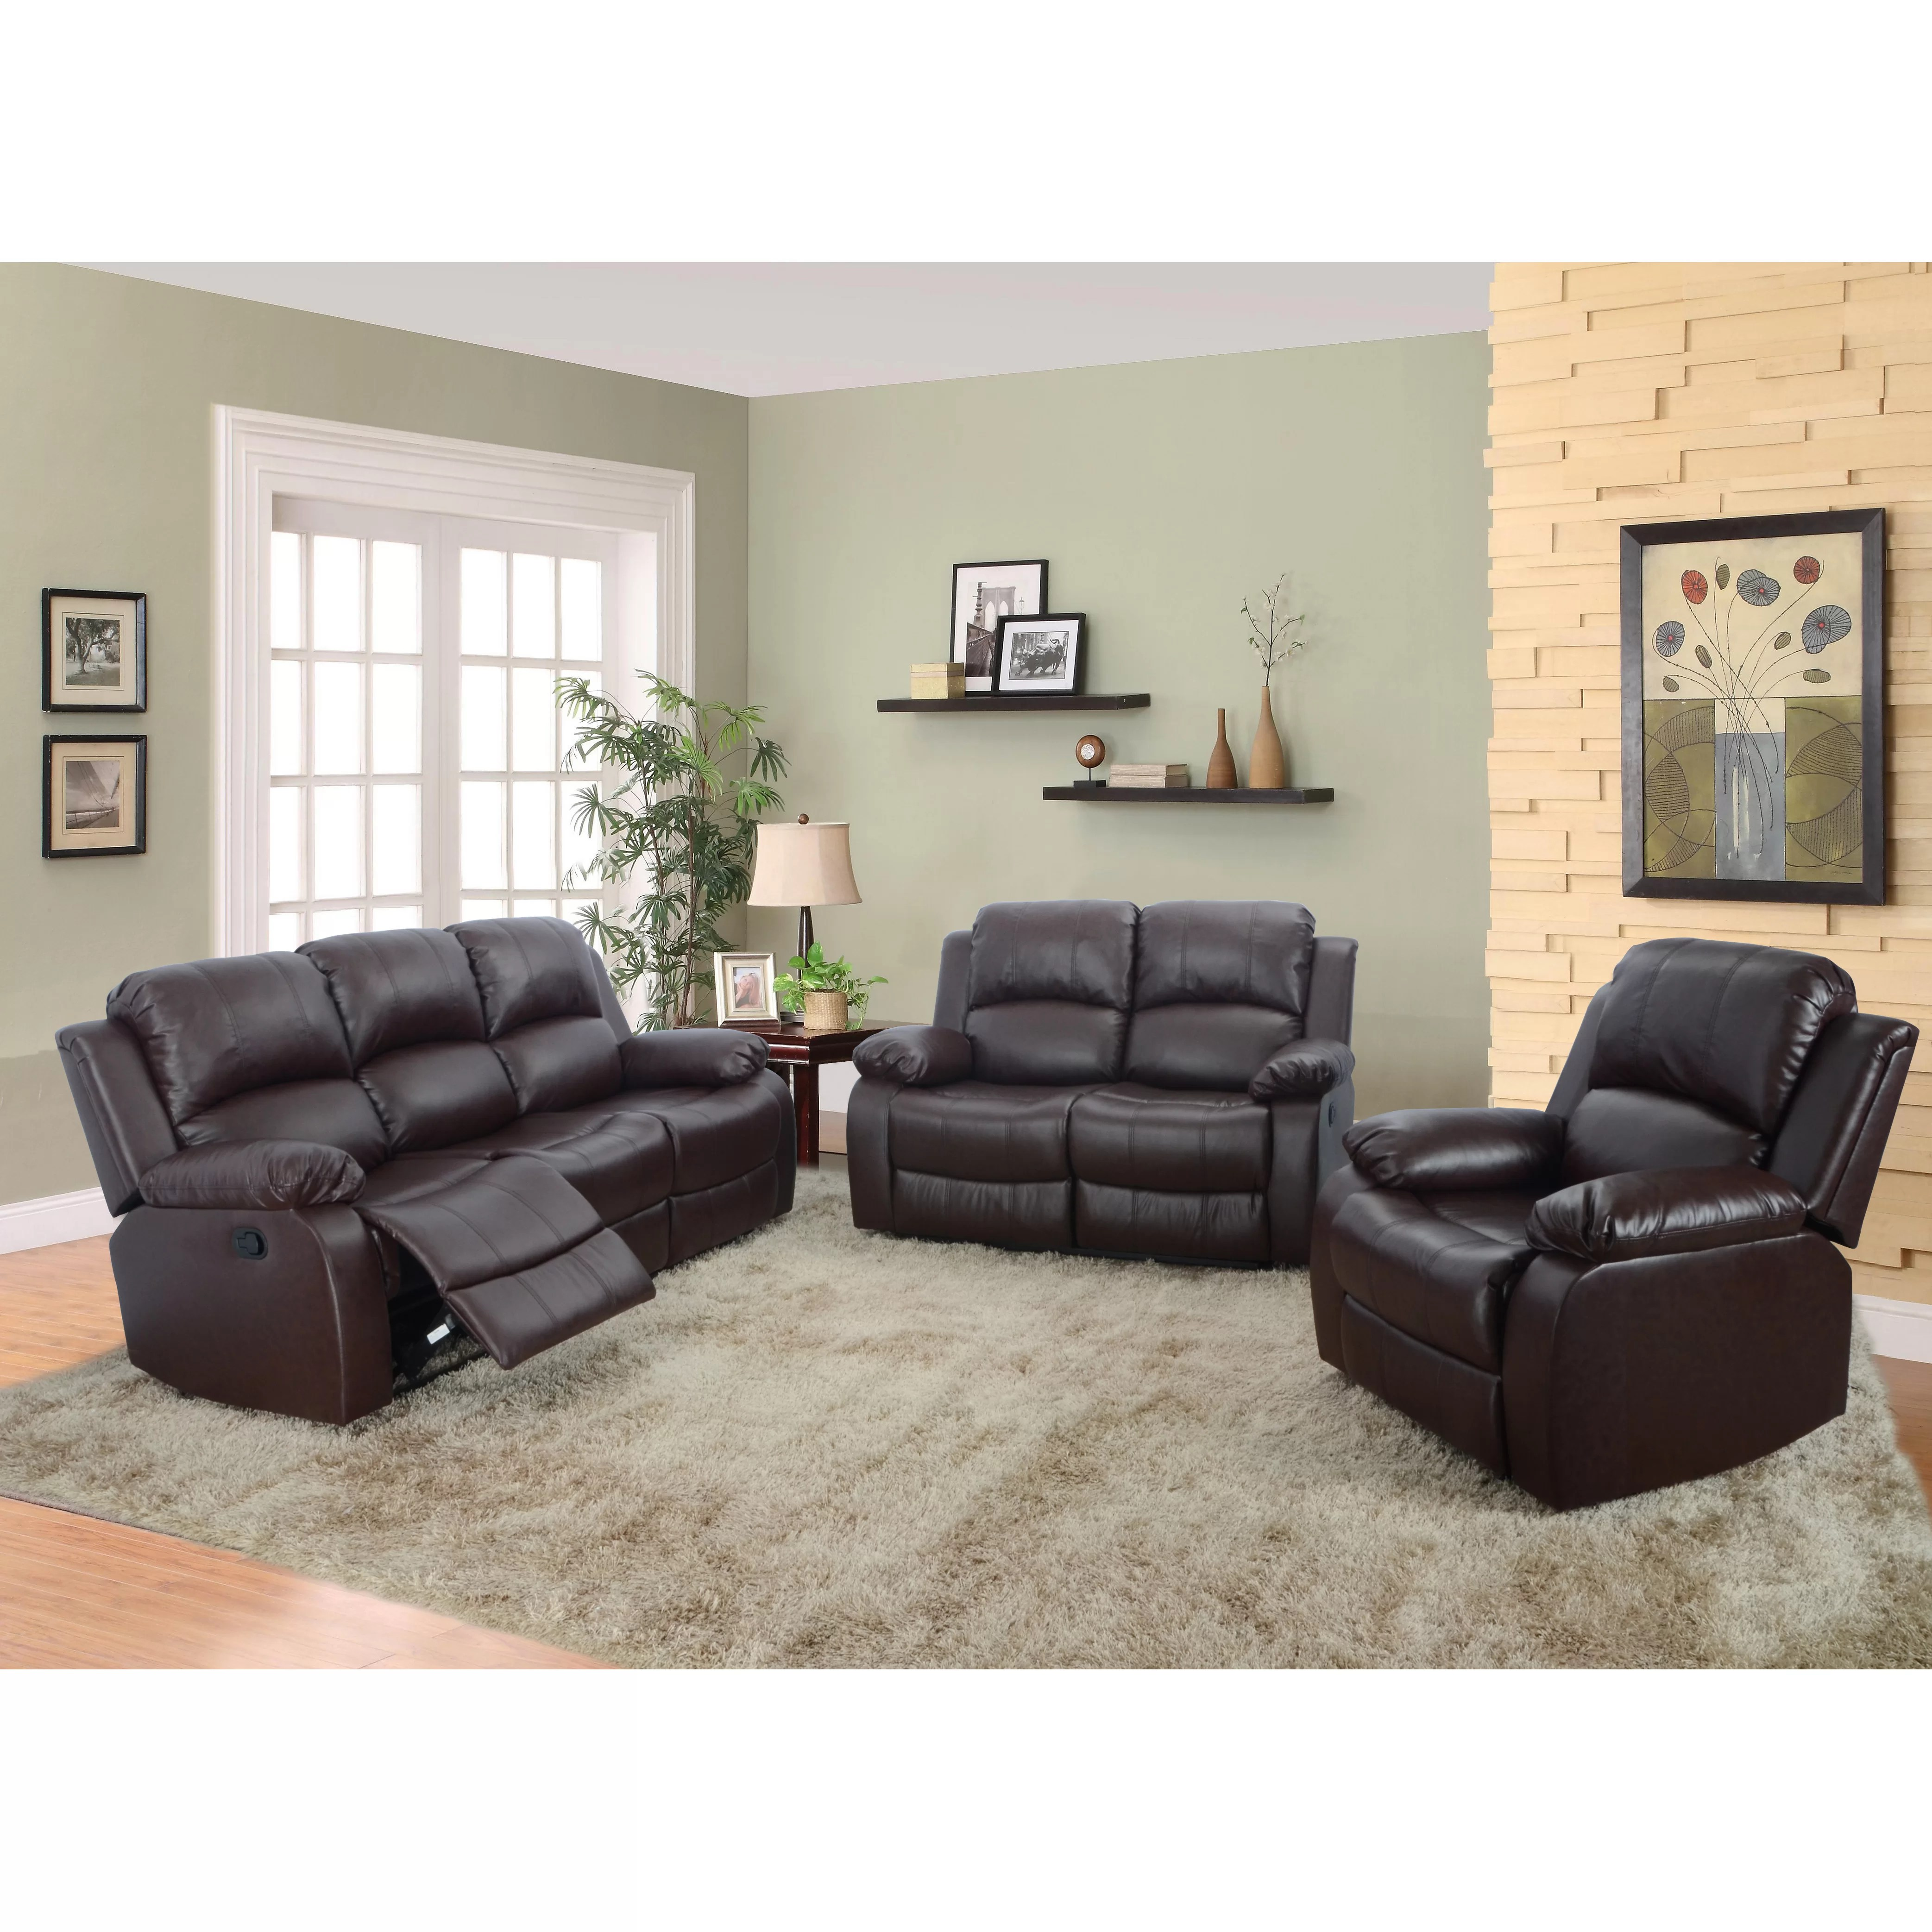 denver sofa cleaning how to replace cushion covers living room furniture